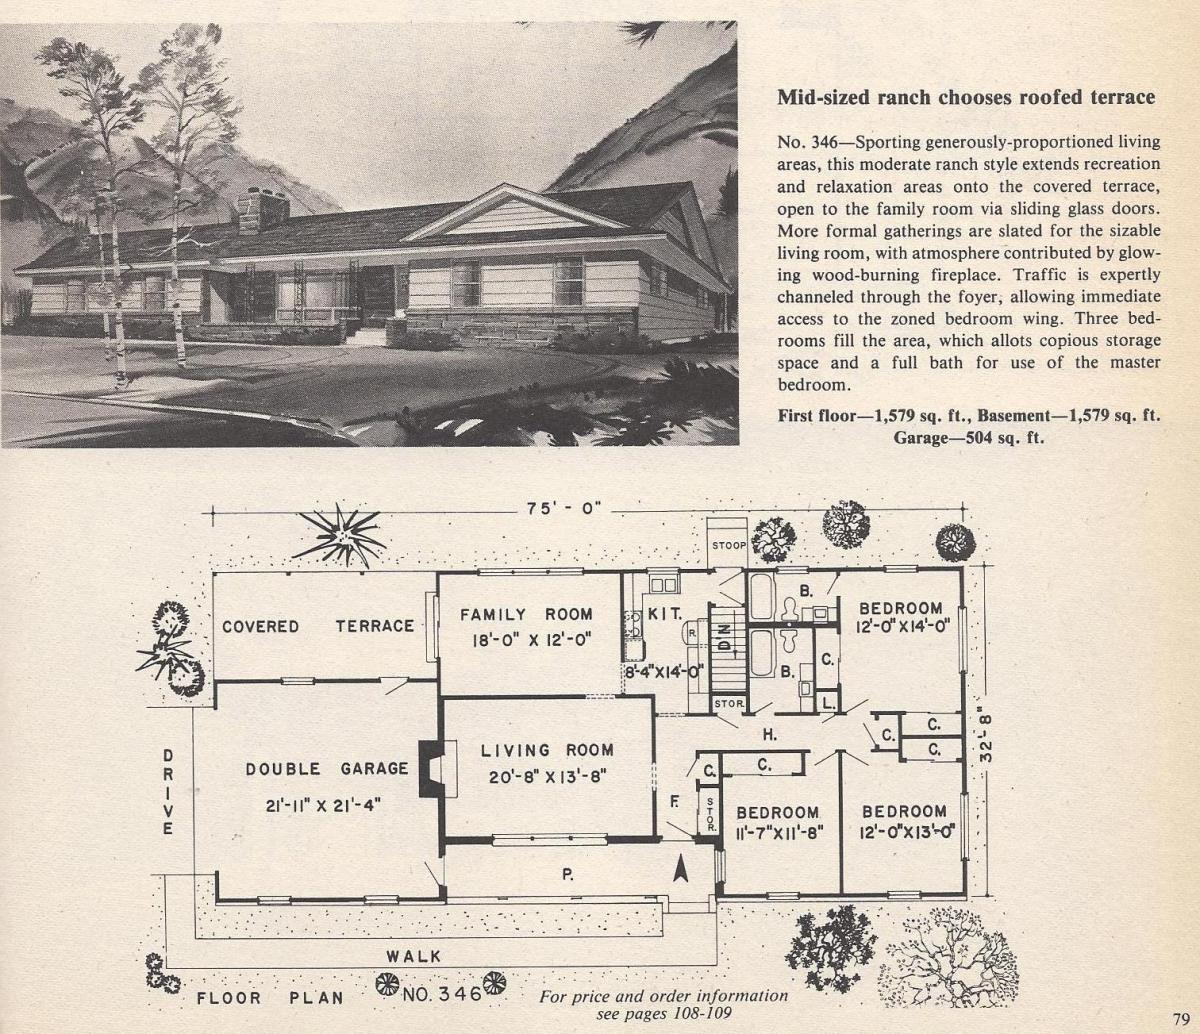 Vintage House Plans , Mid-Sized Ranch